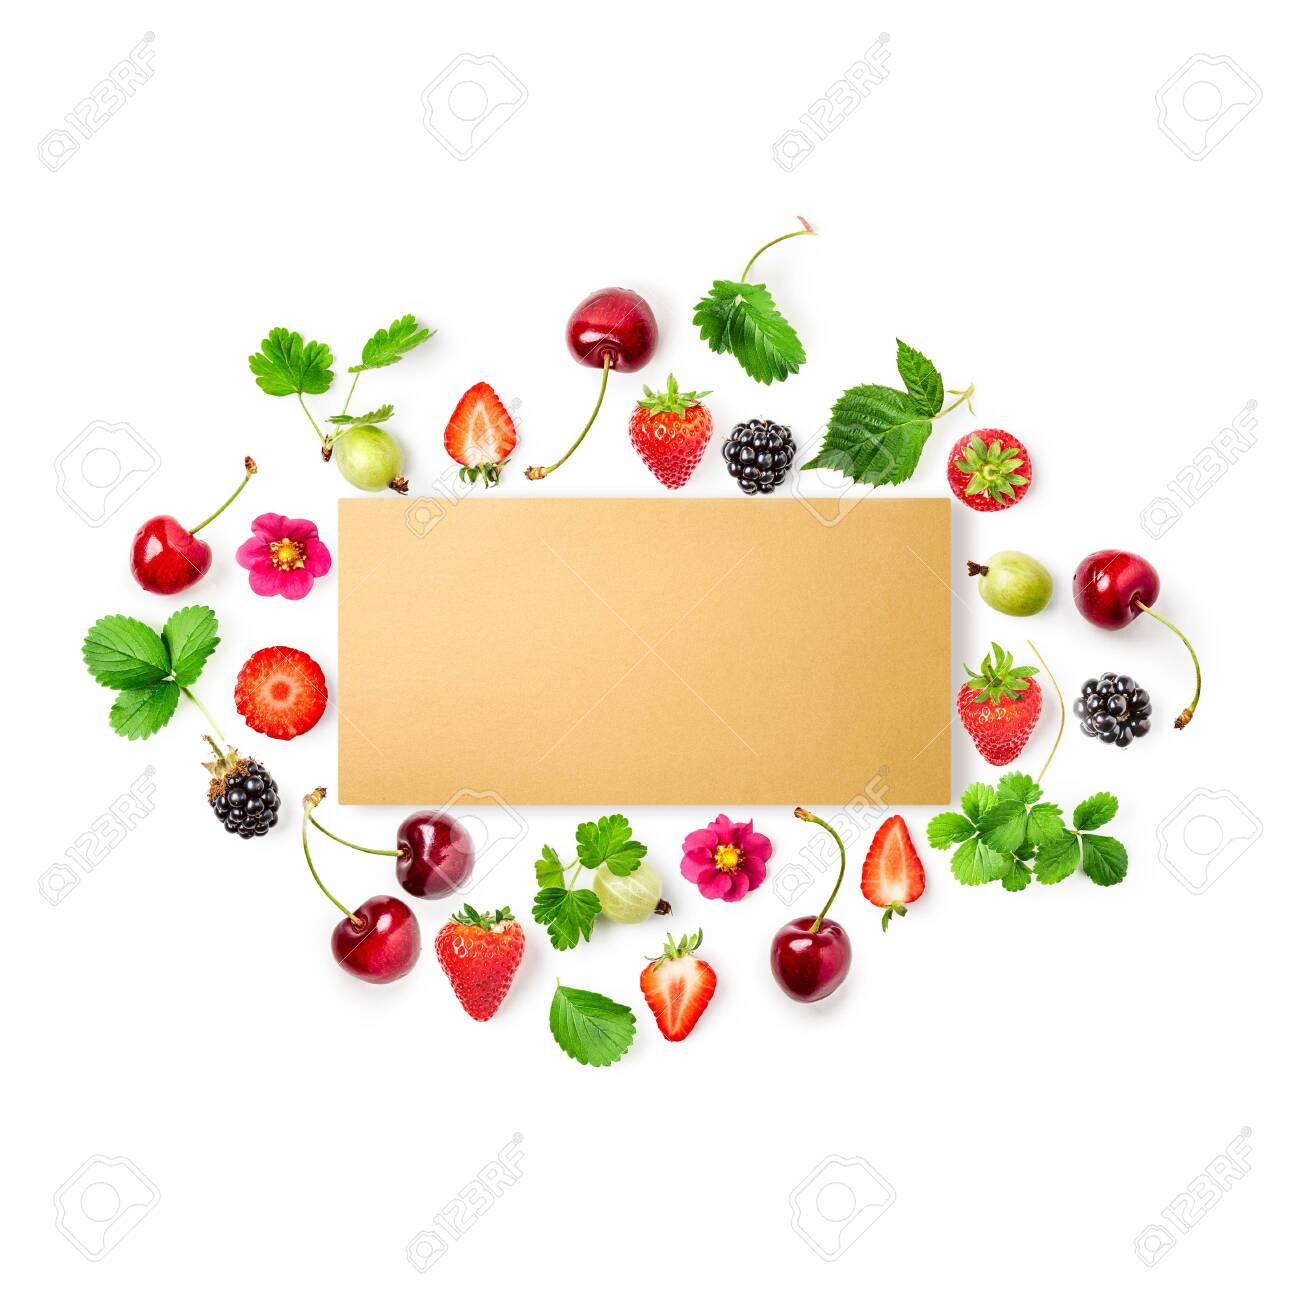 Fresh strawberry, cherry, gooseberry and blackberry frame with paper card on white background. Healthy eating concept. Summer fruits arrangement. Top view, flat lay, design element - 131198866